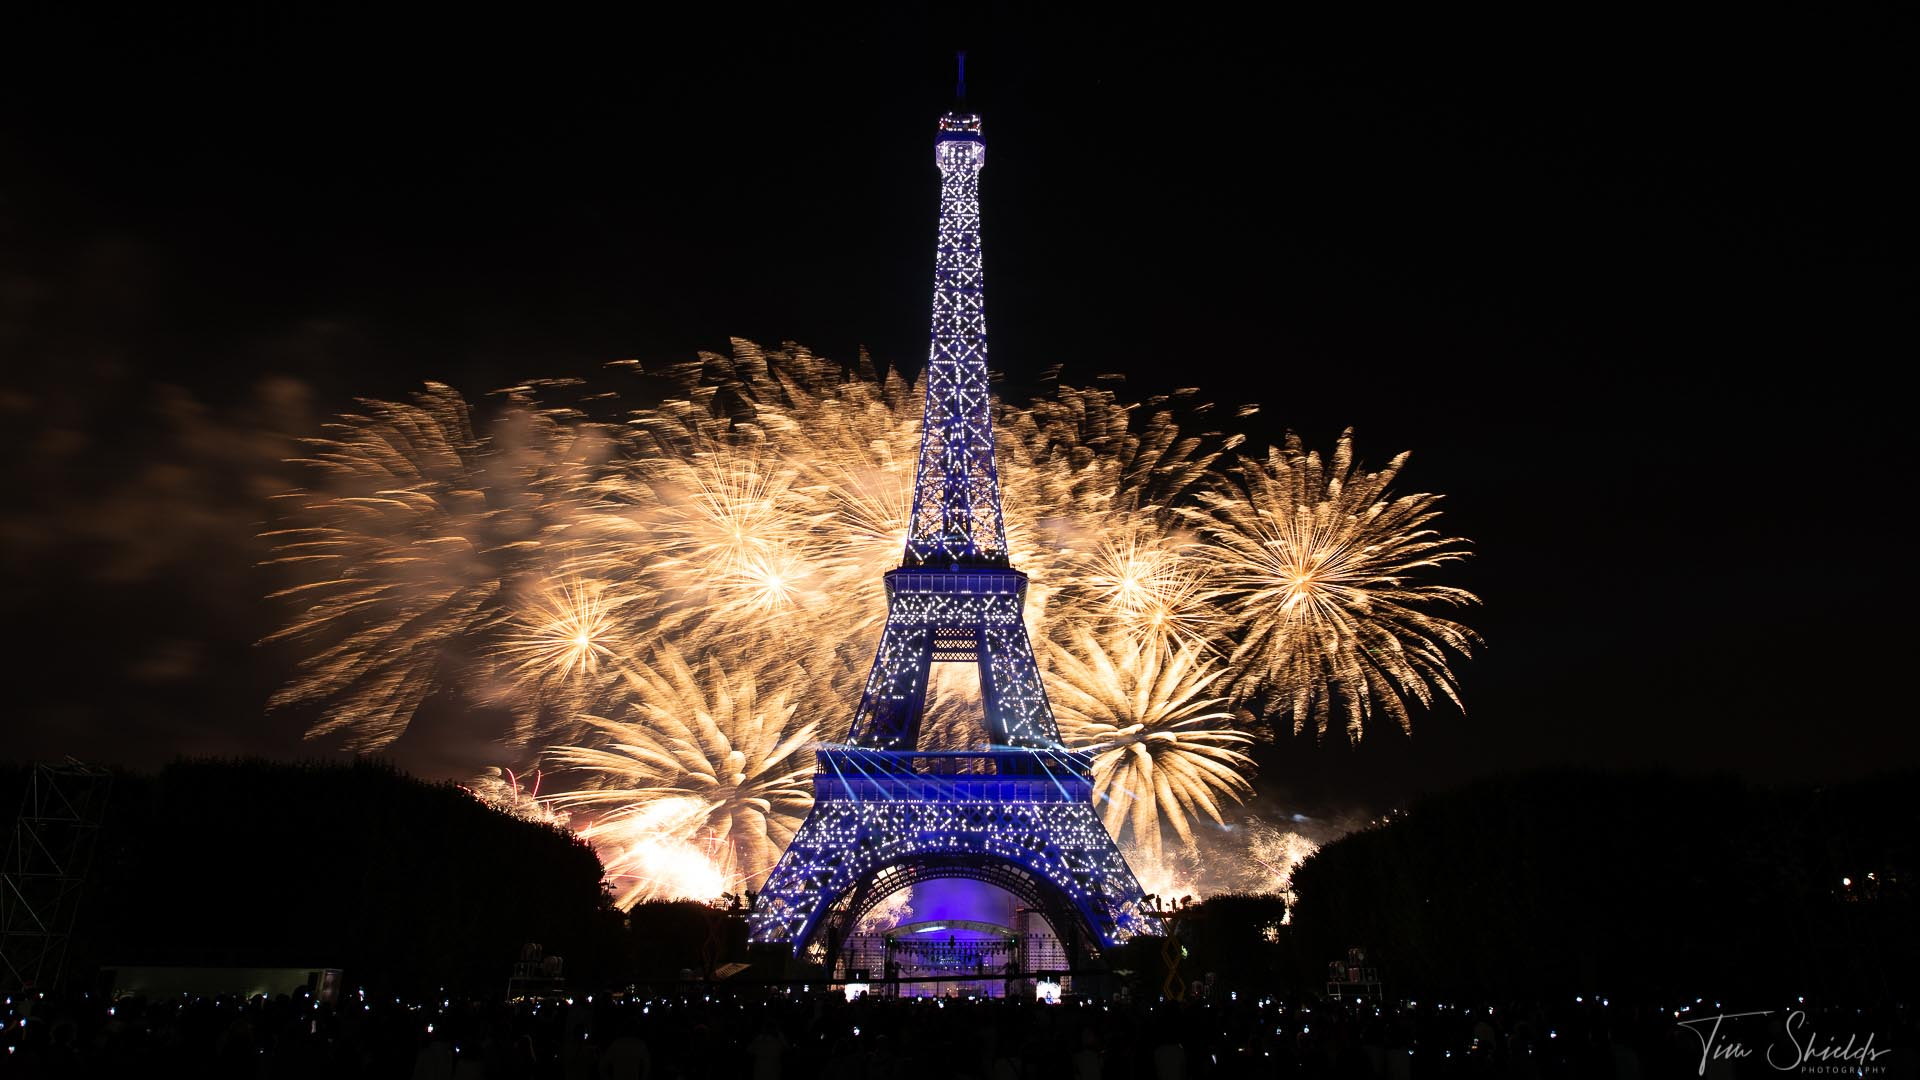 The secret behind stunning fireworks photography